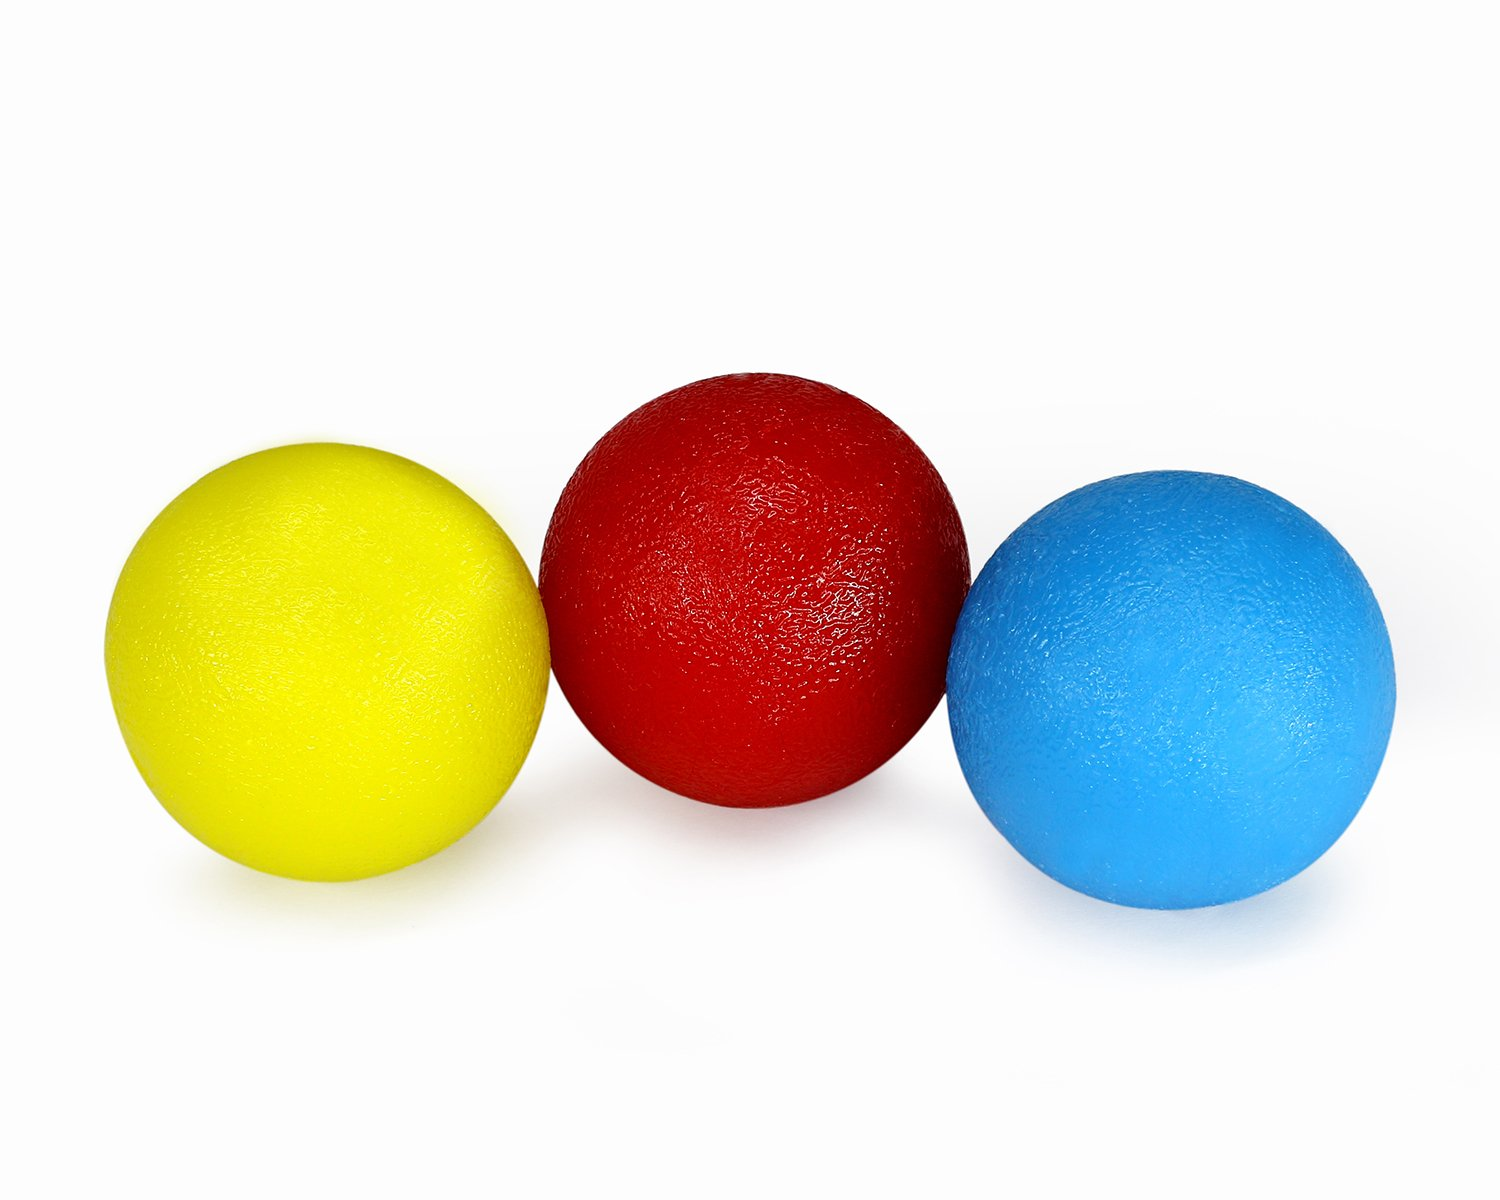 Yes4All Rubber Hand Therapy Exercise Ball Kit - Pack 3 - Yellow + Red + Blue - ²8GT3Z by Yes4All